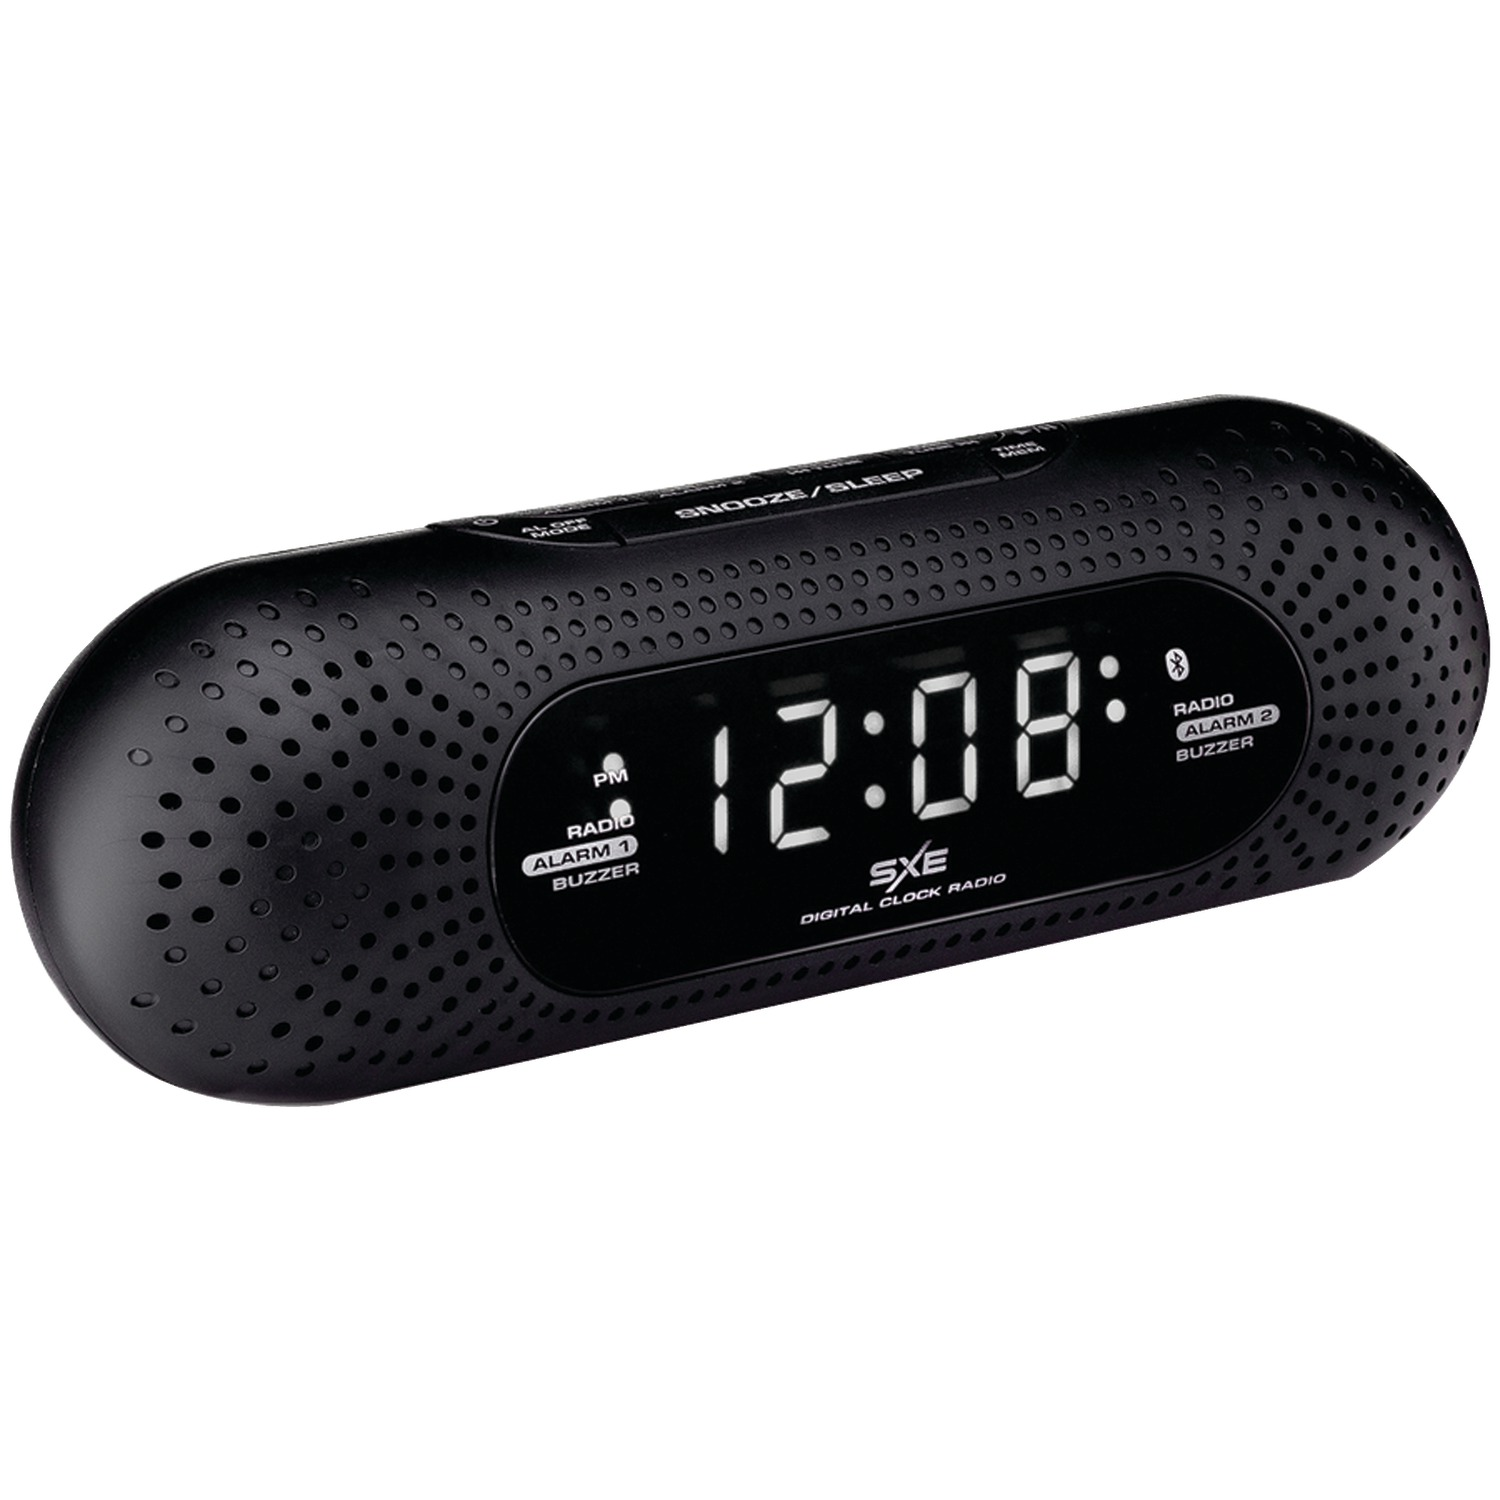 sxe sxe86002 bluetooth r speaker alarm clock radio. Black Bedroom Furniture Sets. Home Design Ideas